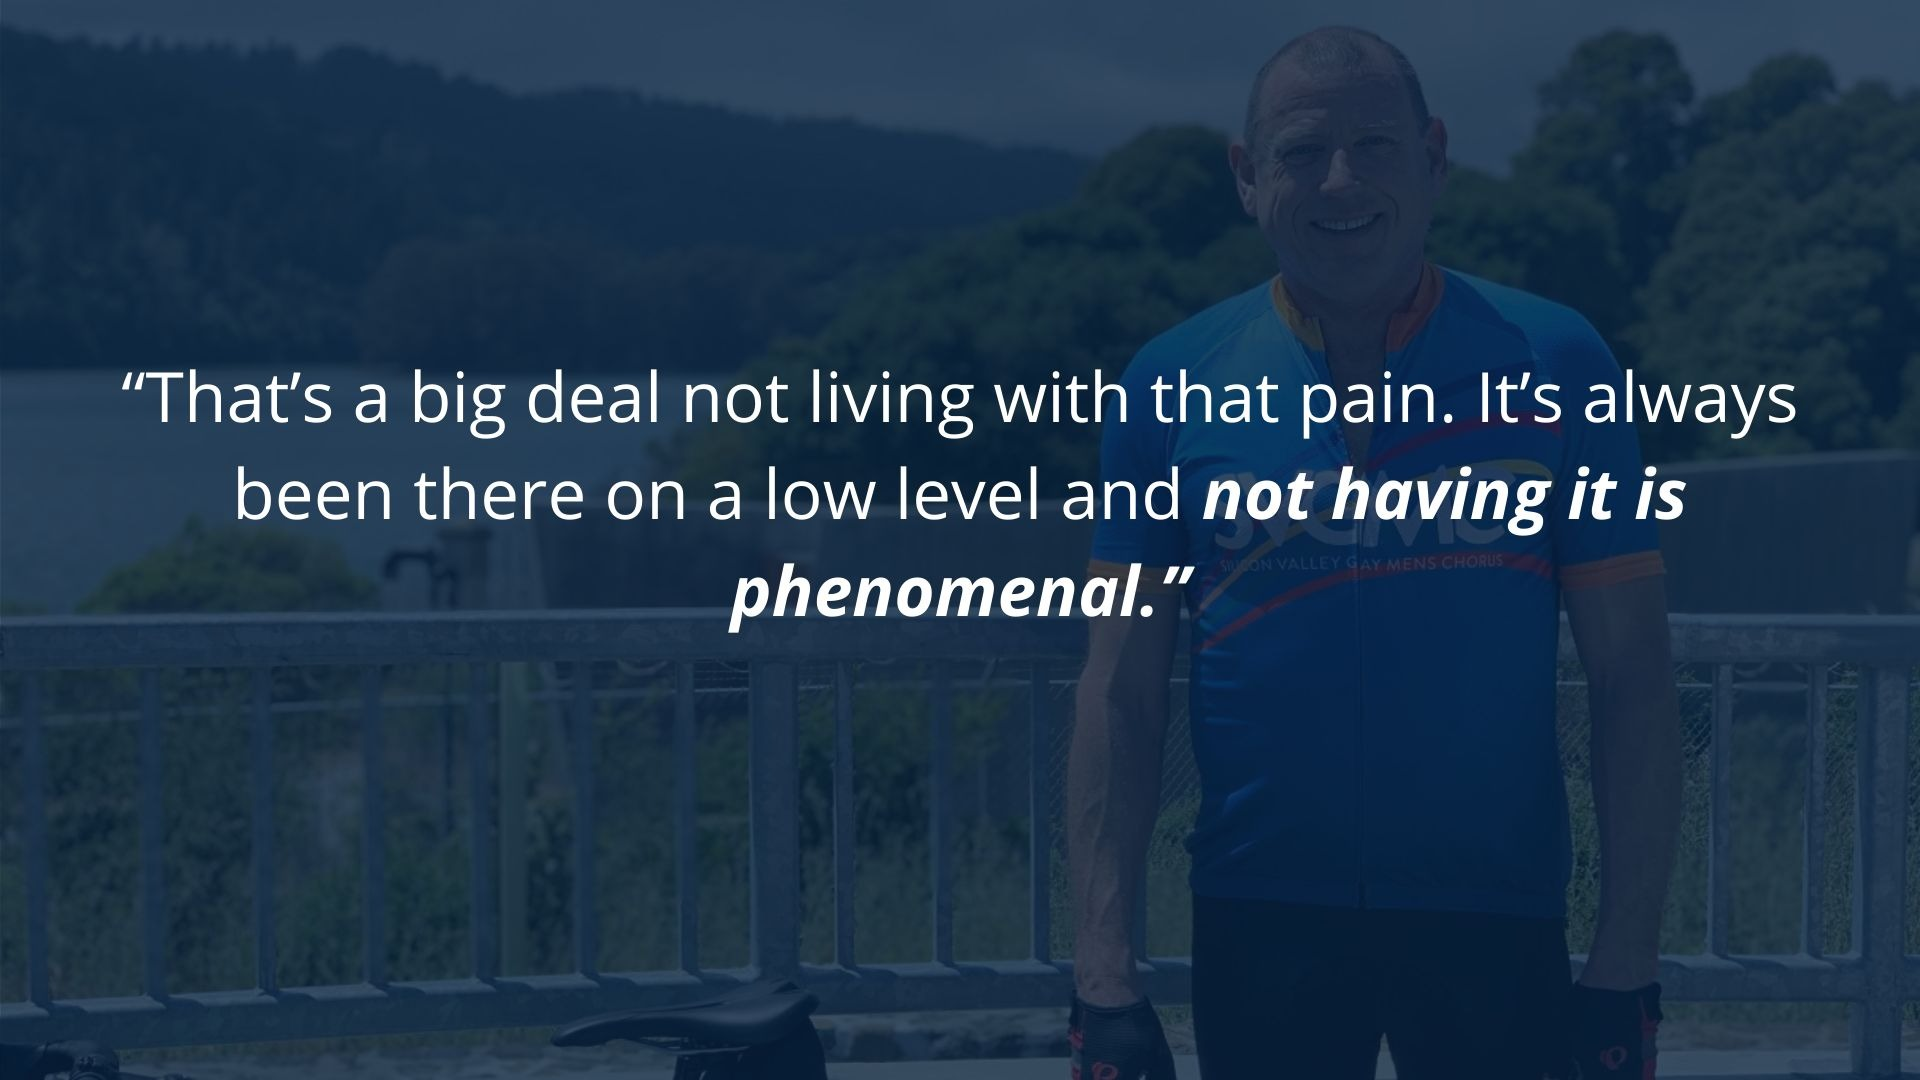 Virtual Training client says not having pain is phenomenal